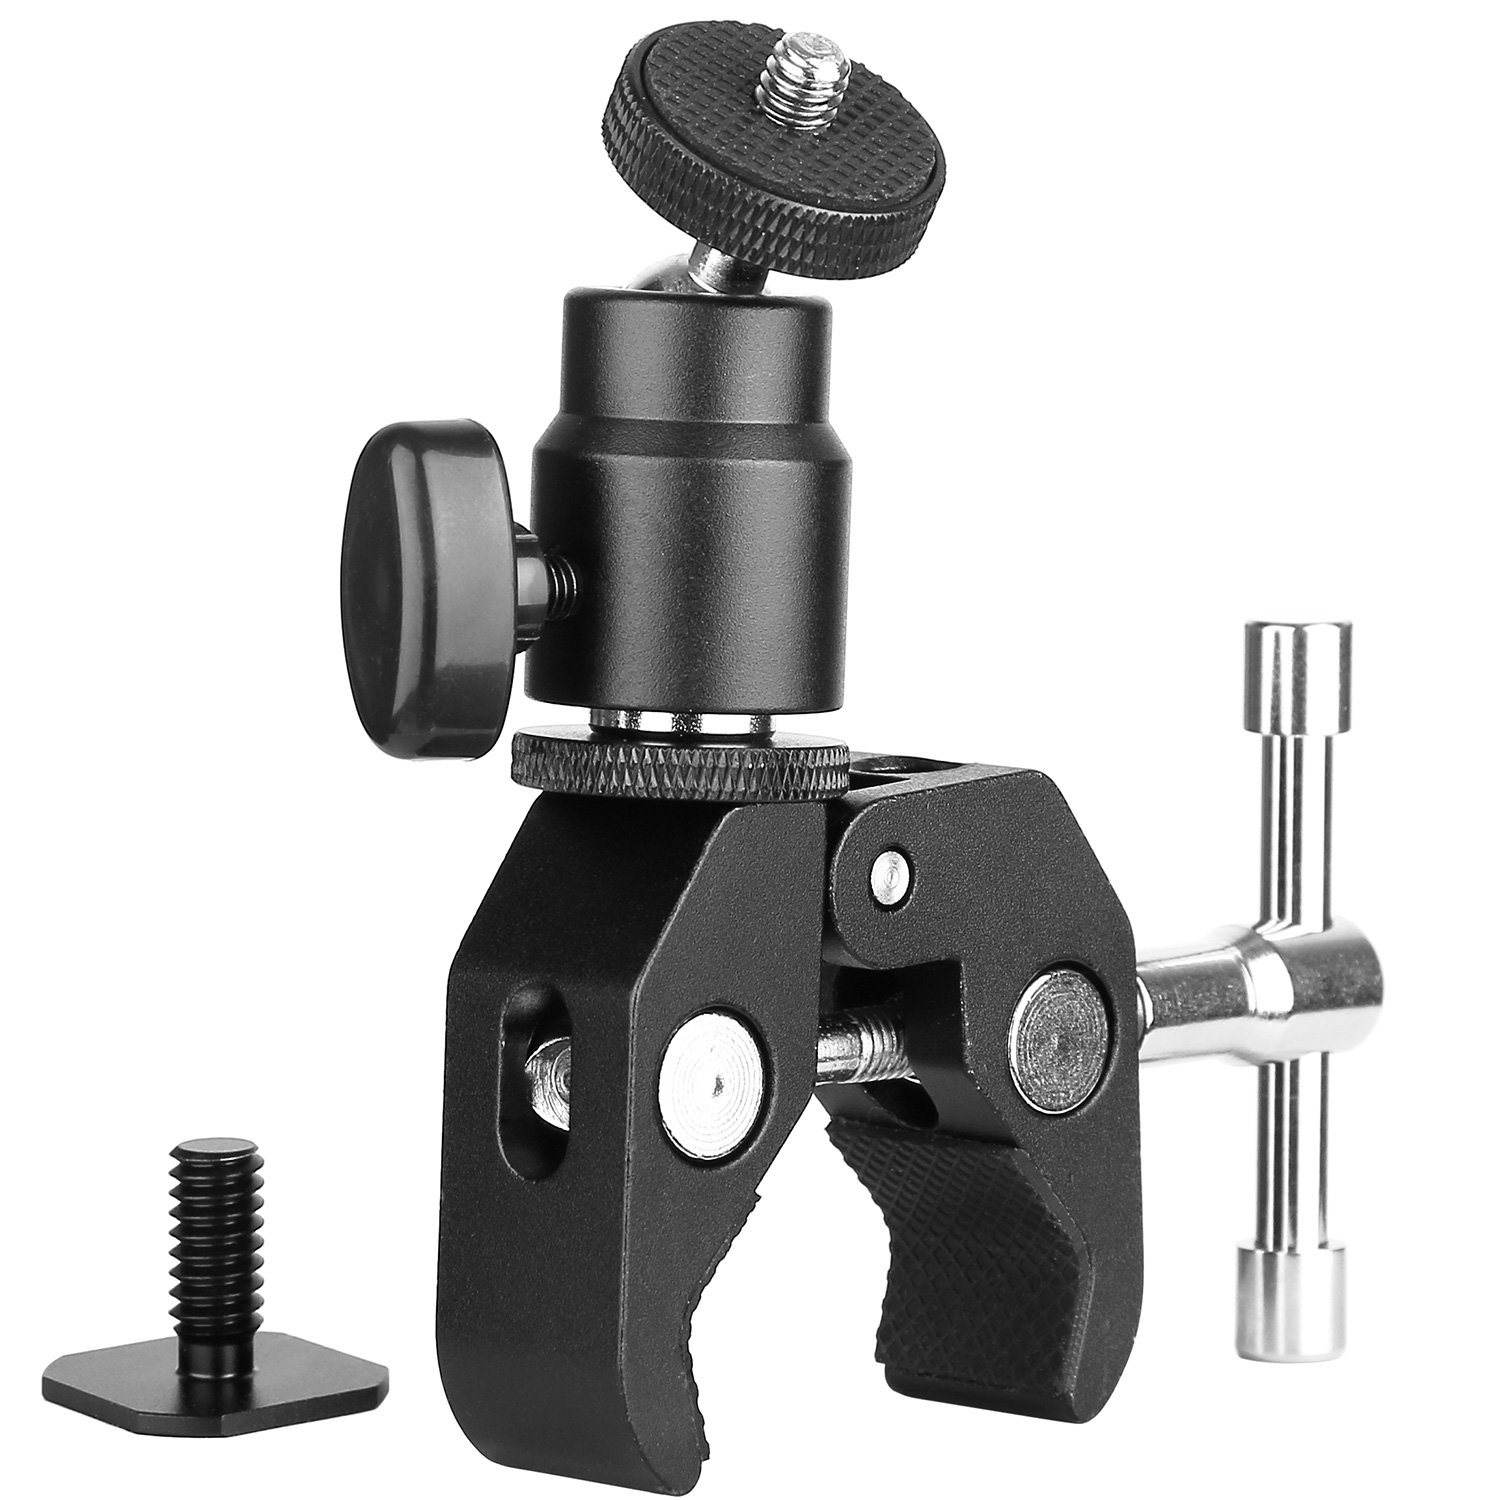 ChromLives Camera Clamp Mount Ball Head Clamp - Super Clamp and Mini Ball Head Hot Shoe Mount Adapter with 1/4''-20 Tripod Screw for LCD/DV Monitor, LED Lights, Flash Light,Microphone and More